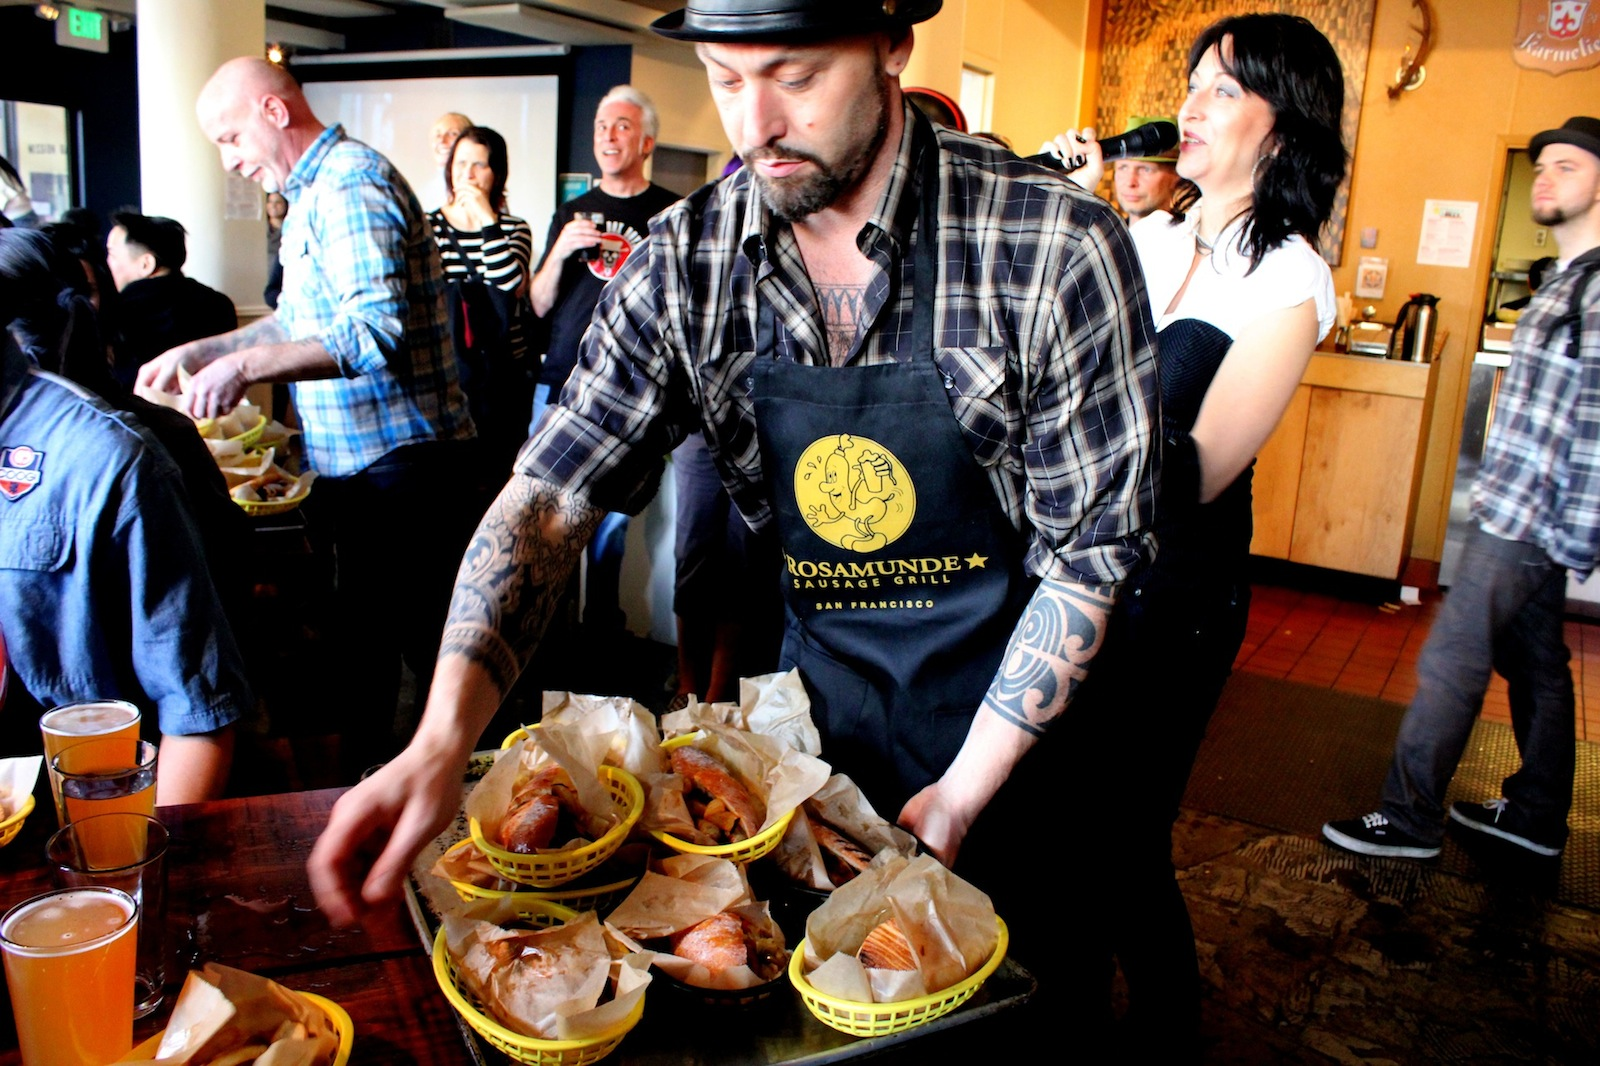 VIDEO: Ready, Set, Eat! Sausage-Eating Contest